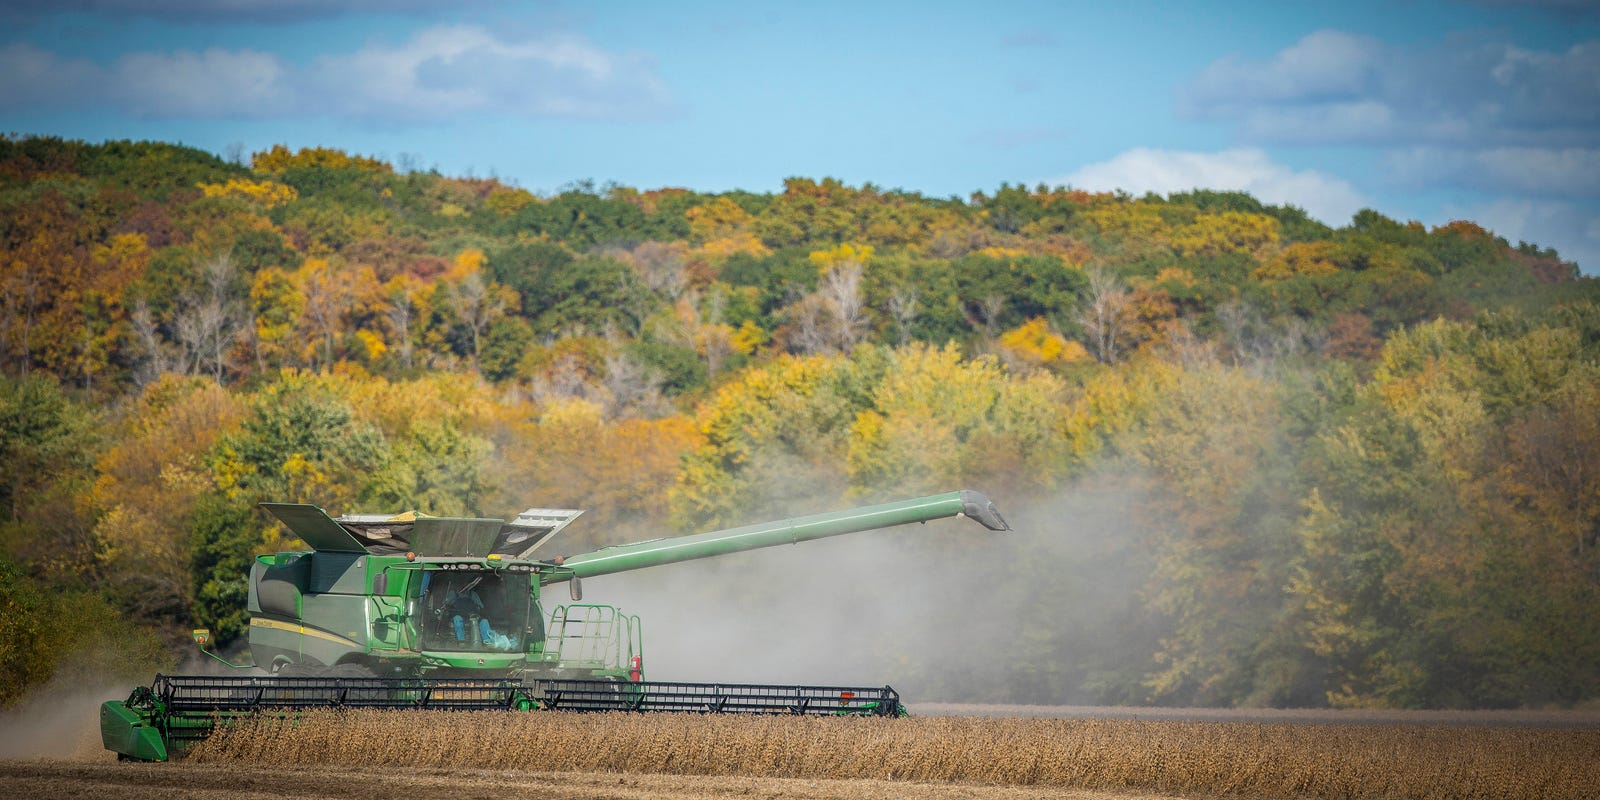 Despite downturn, Iowa's farmland values climb 2.3%, given low interest rates and limited supply